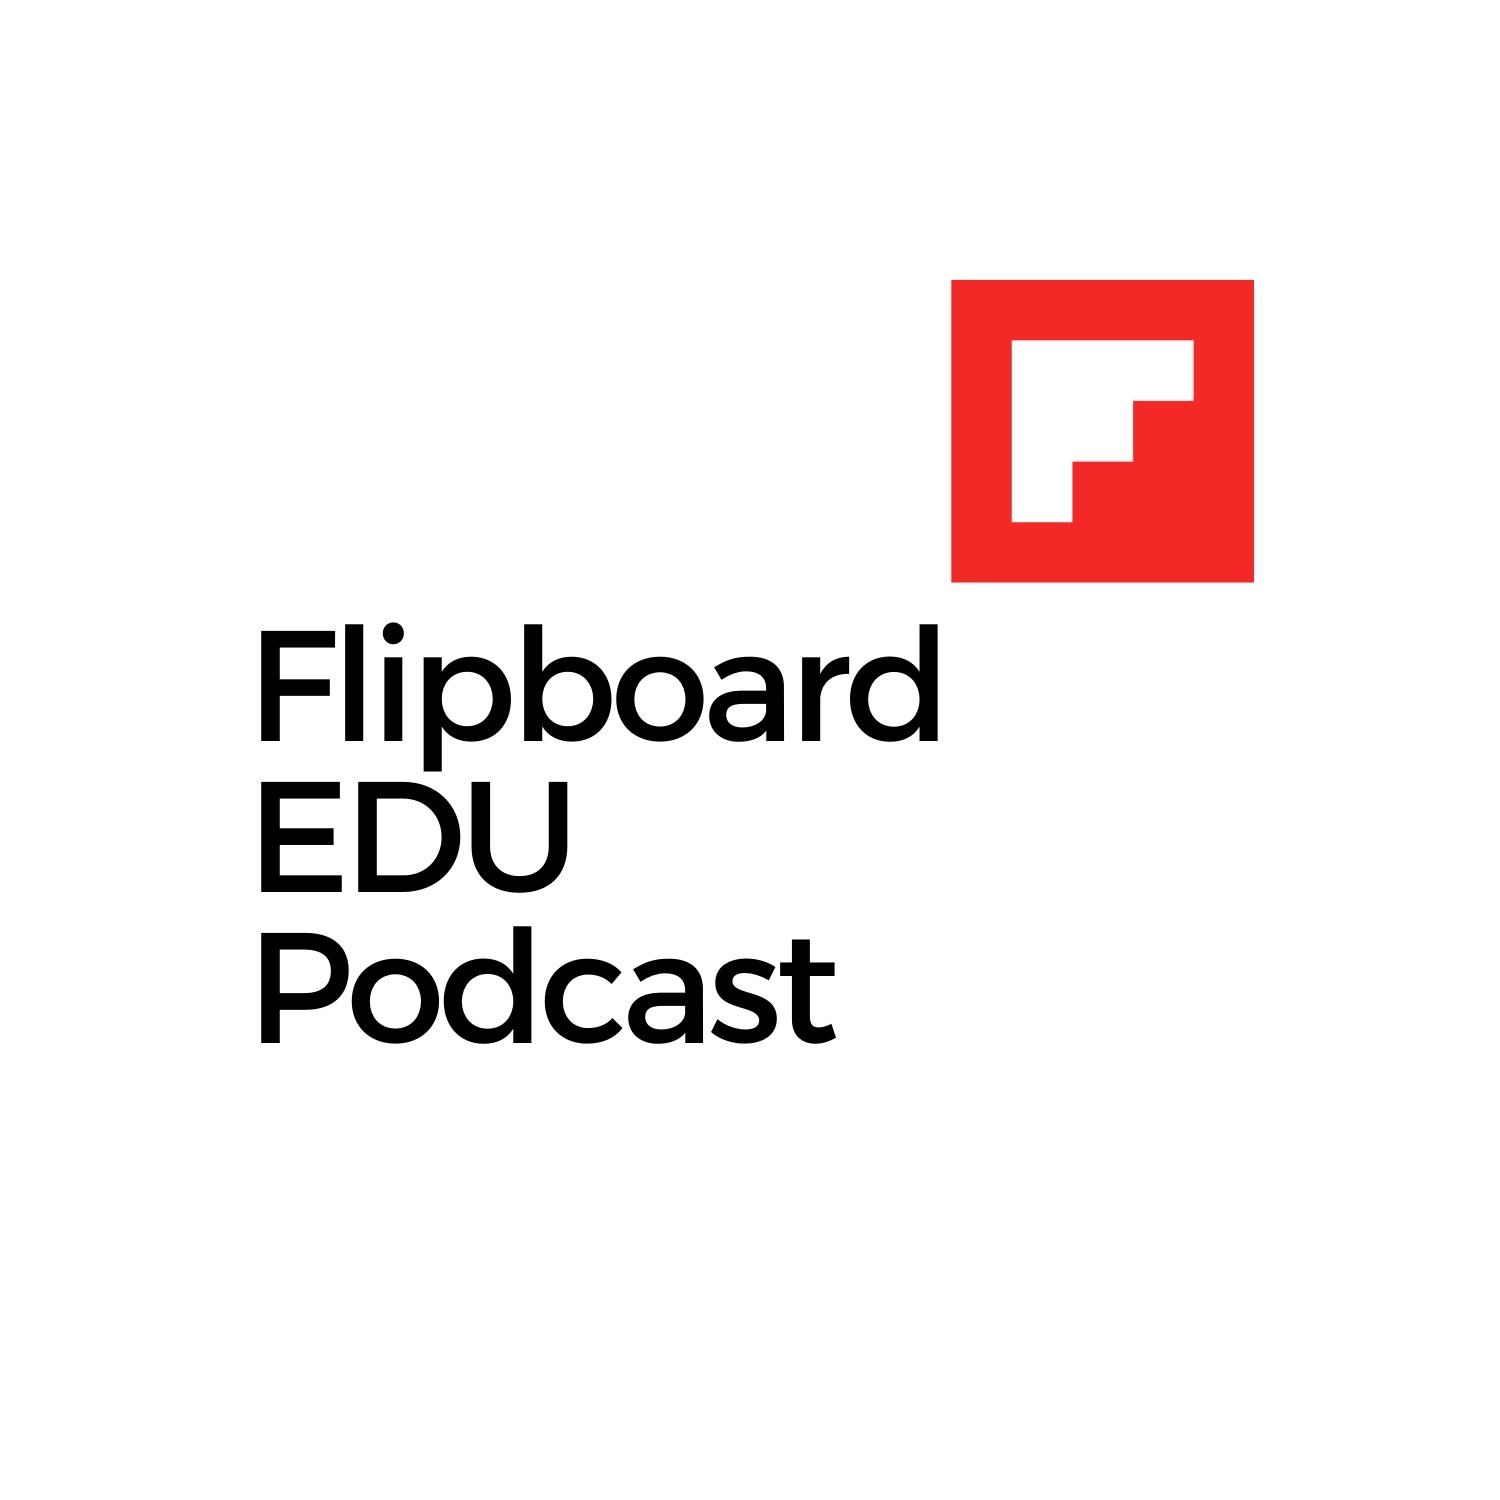 Flipboard EDU Podcast - cover